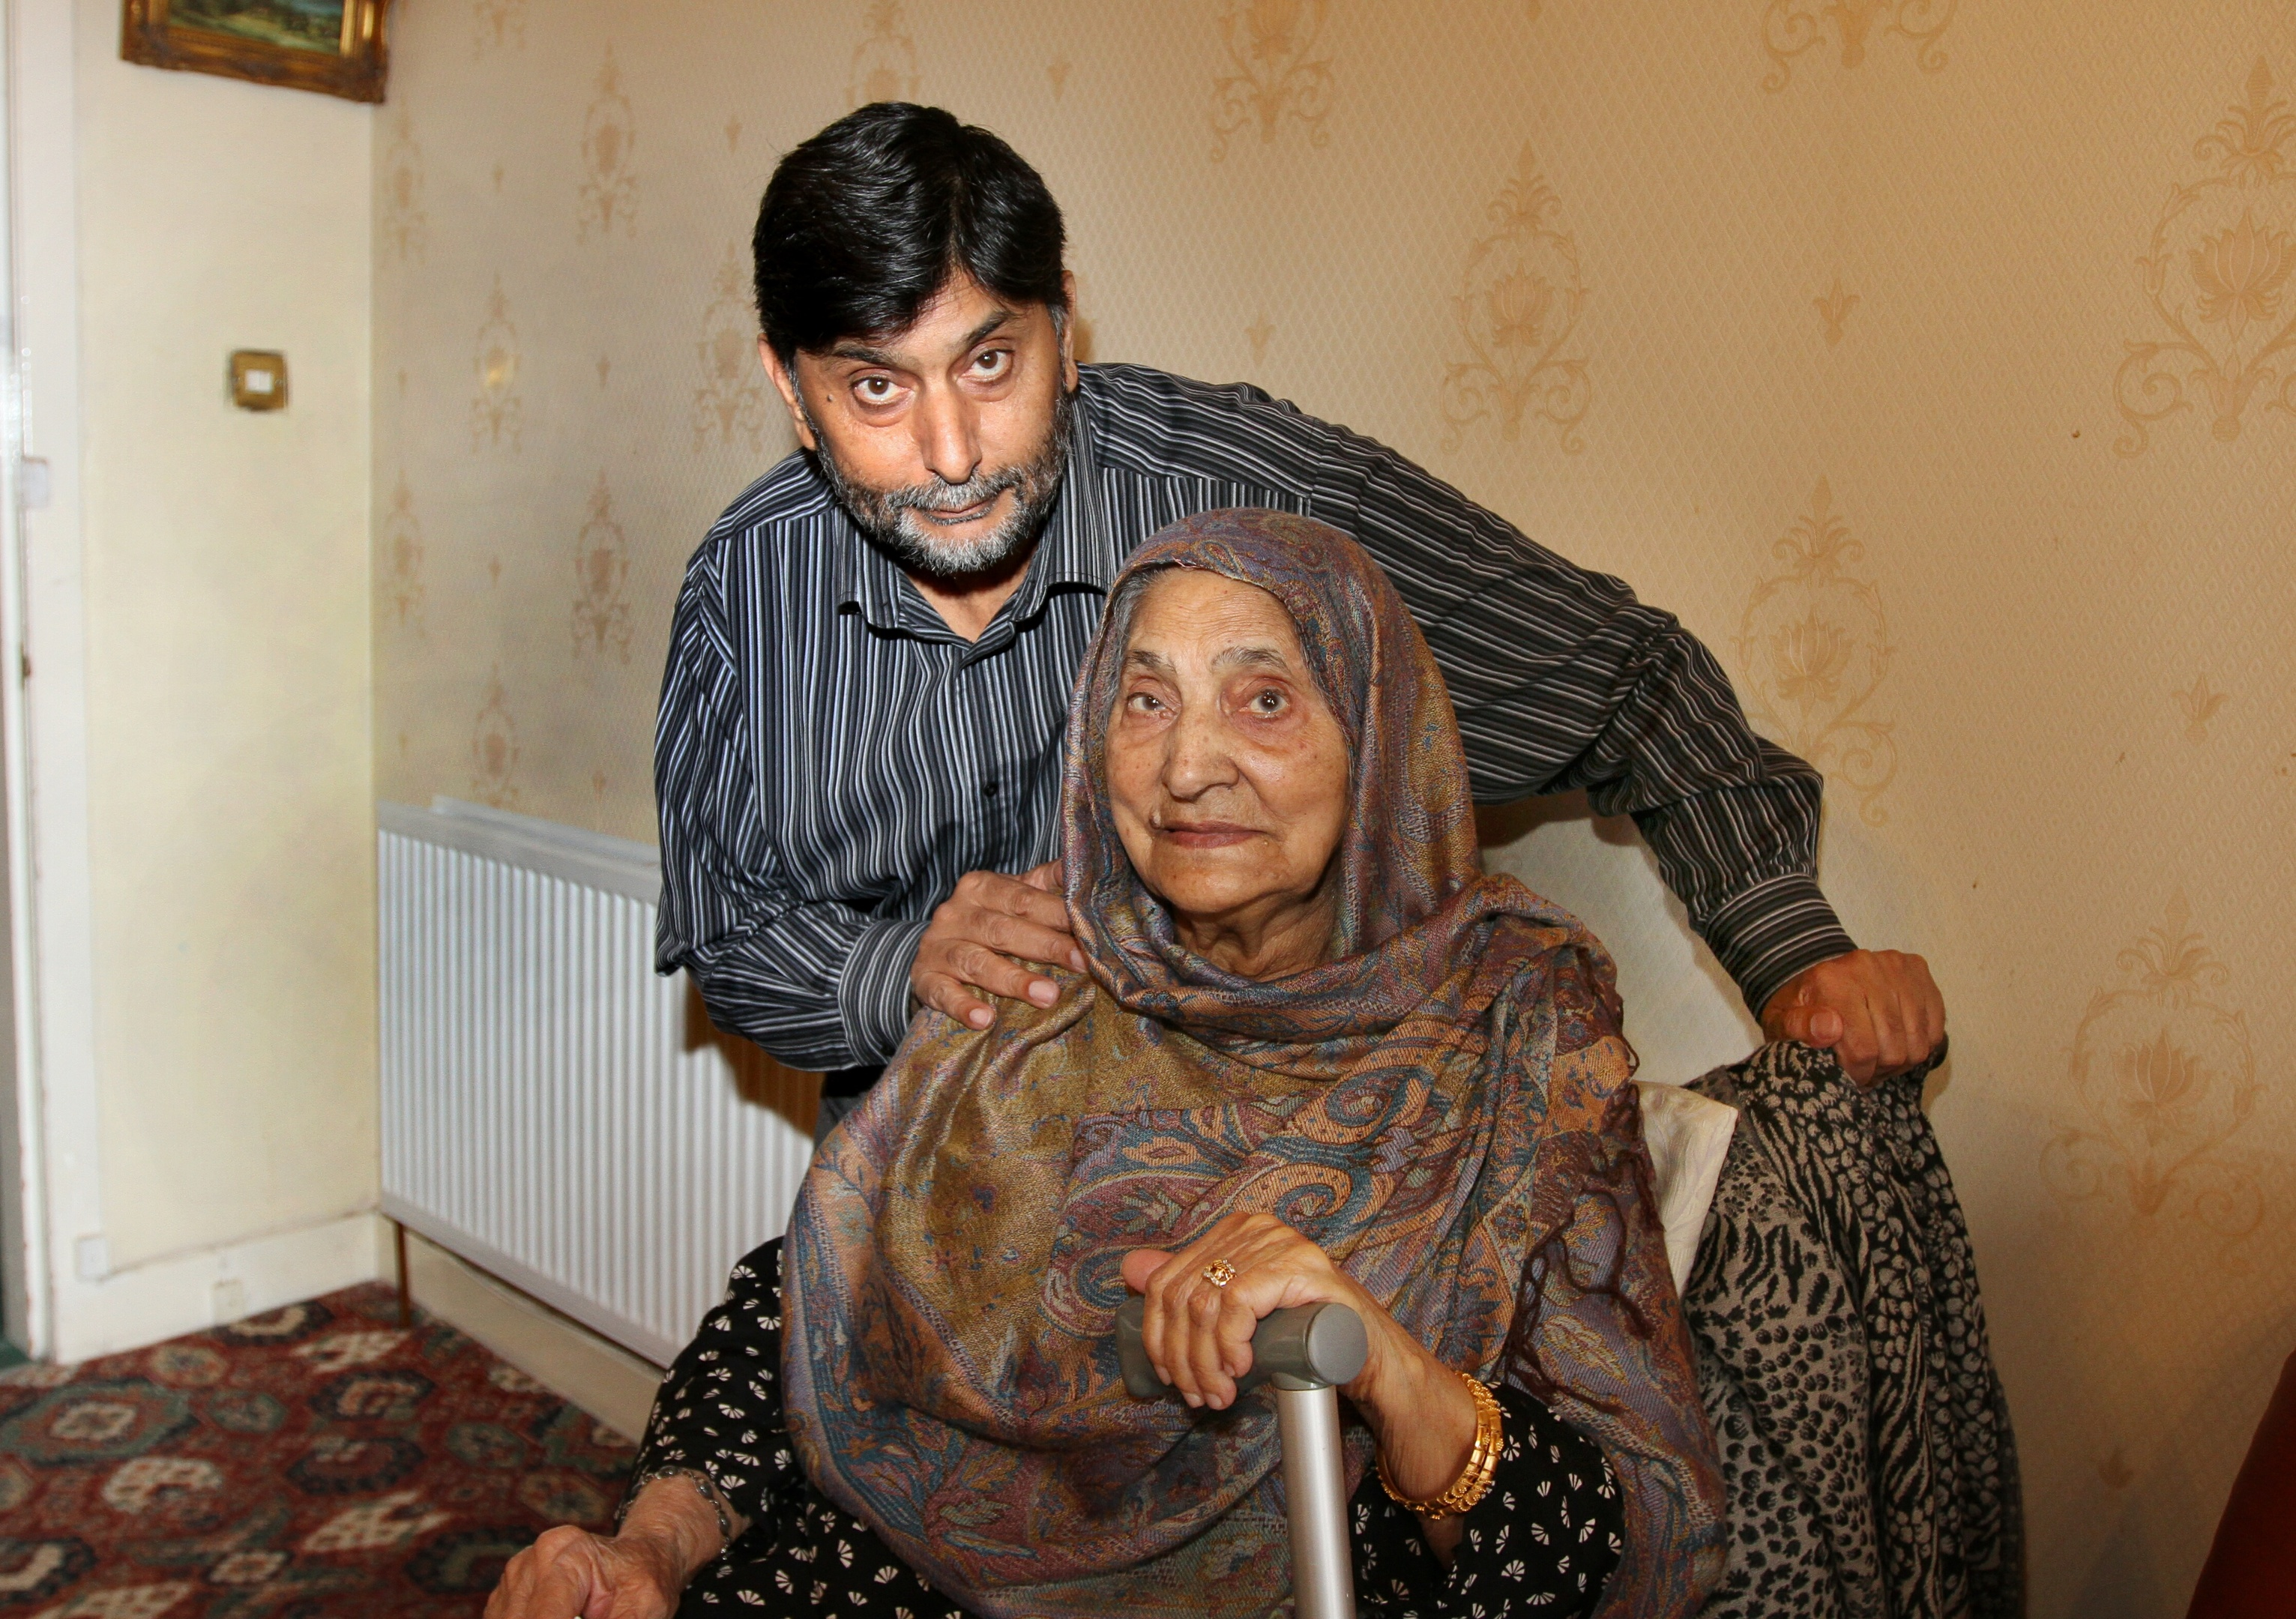 Courier Dundee News- 87 year old Sugra Bhatti from Broughty Ferry was conned out of £400 .